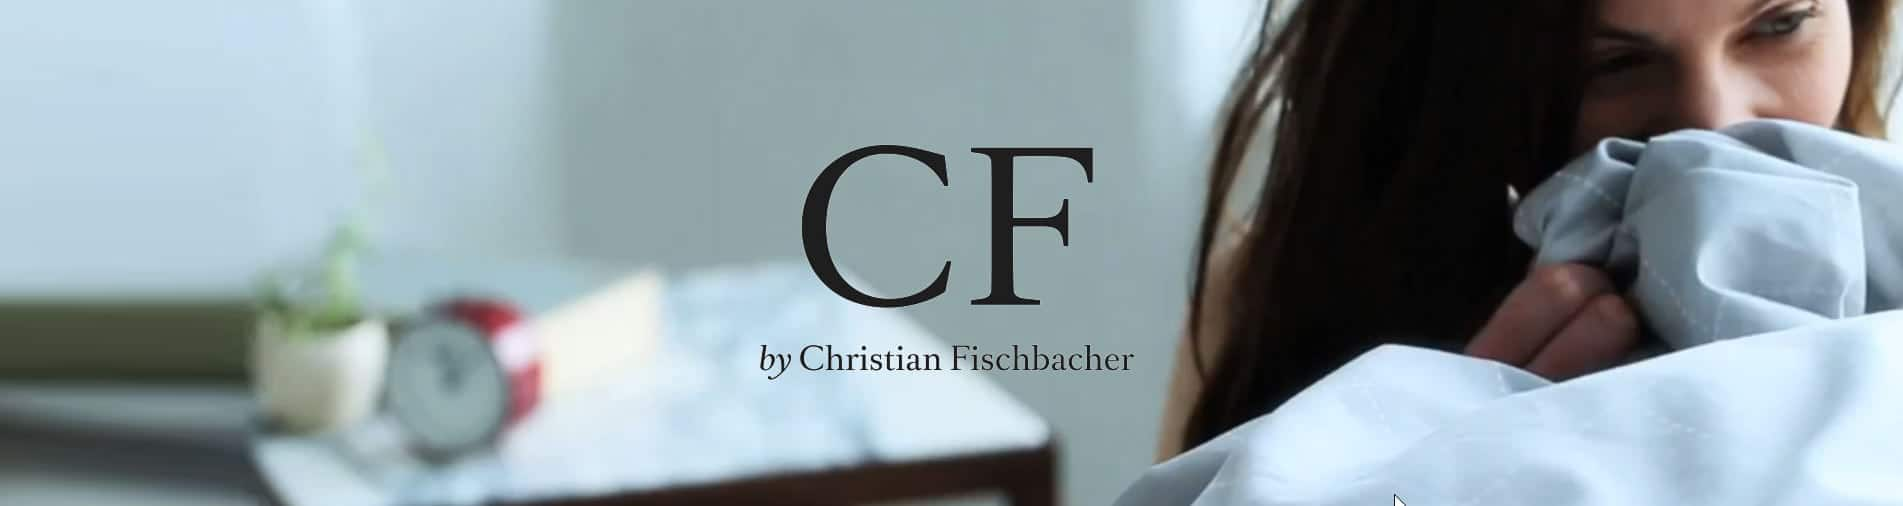 CF by Christian Fischbache